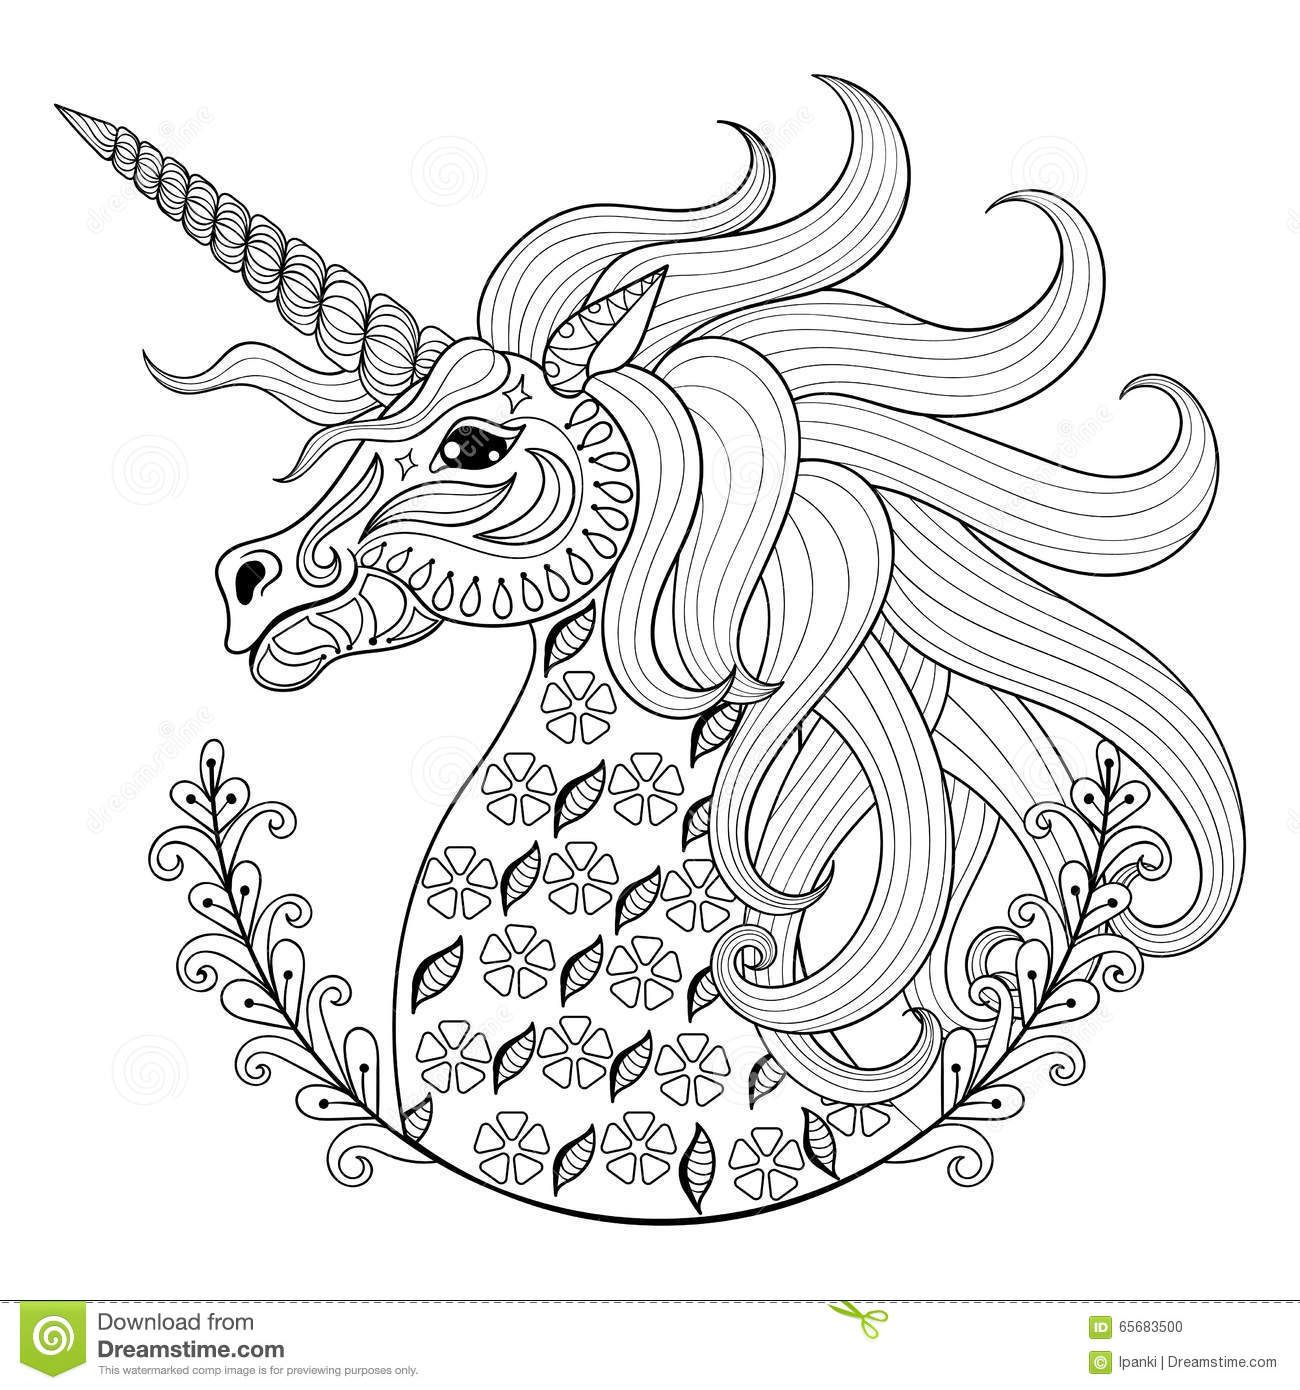 Illustration Of Hand Drawing Unicorn For Adult Anti Stress Coloring Pages Artistic Vector Art Clipart And Stock Vectors